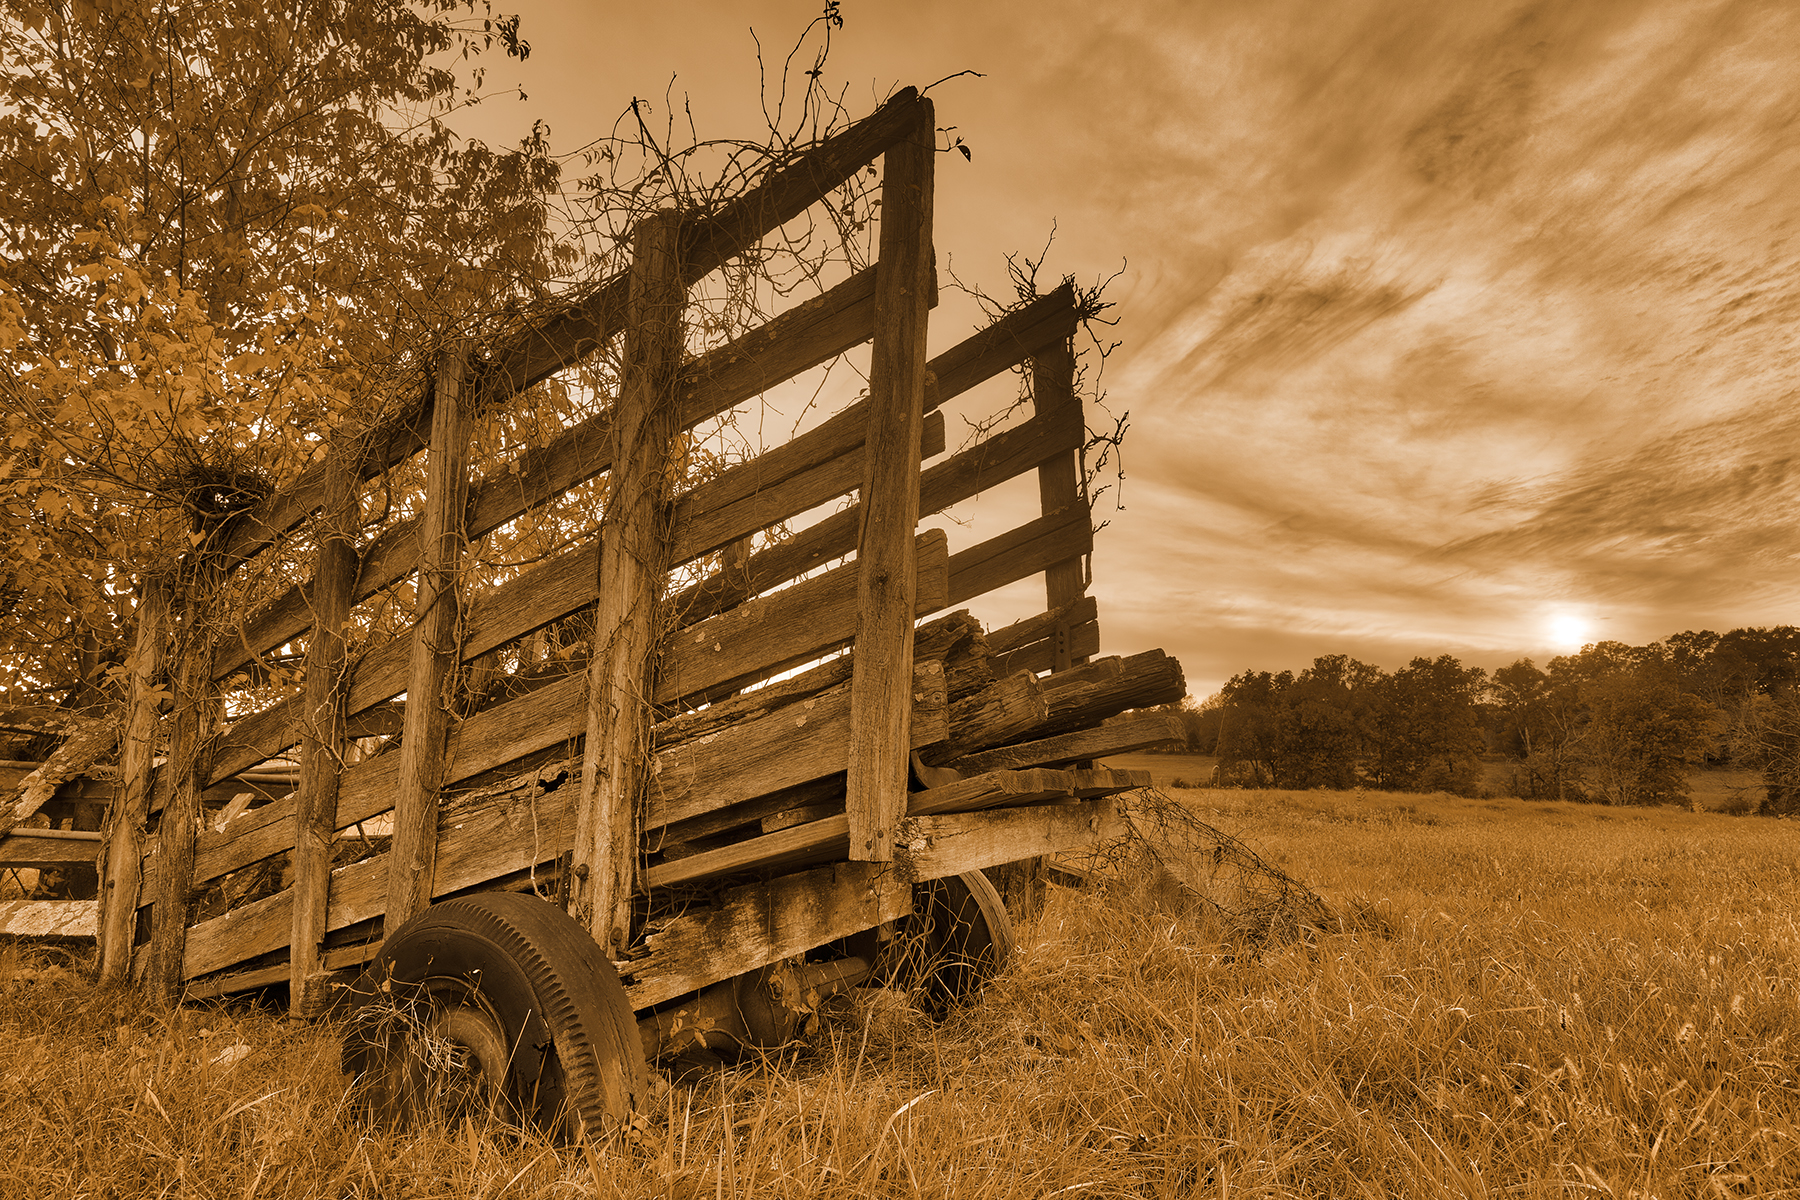 Gettysburg sunset decay - sepia nostalgia hdr photo